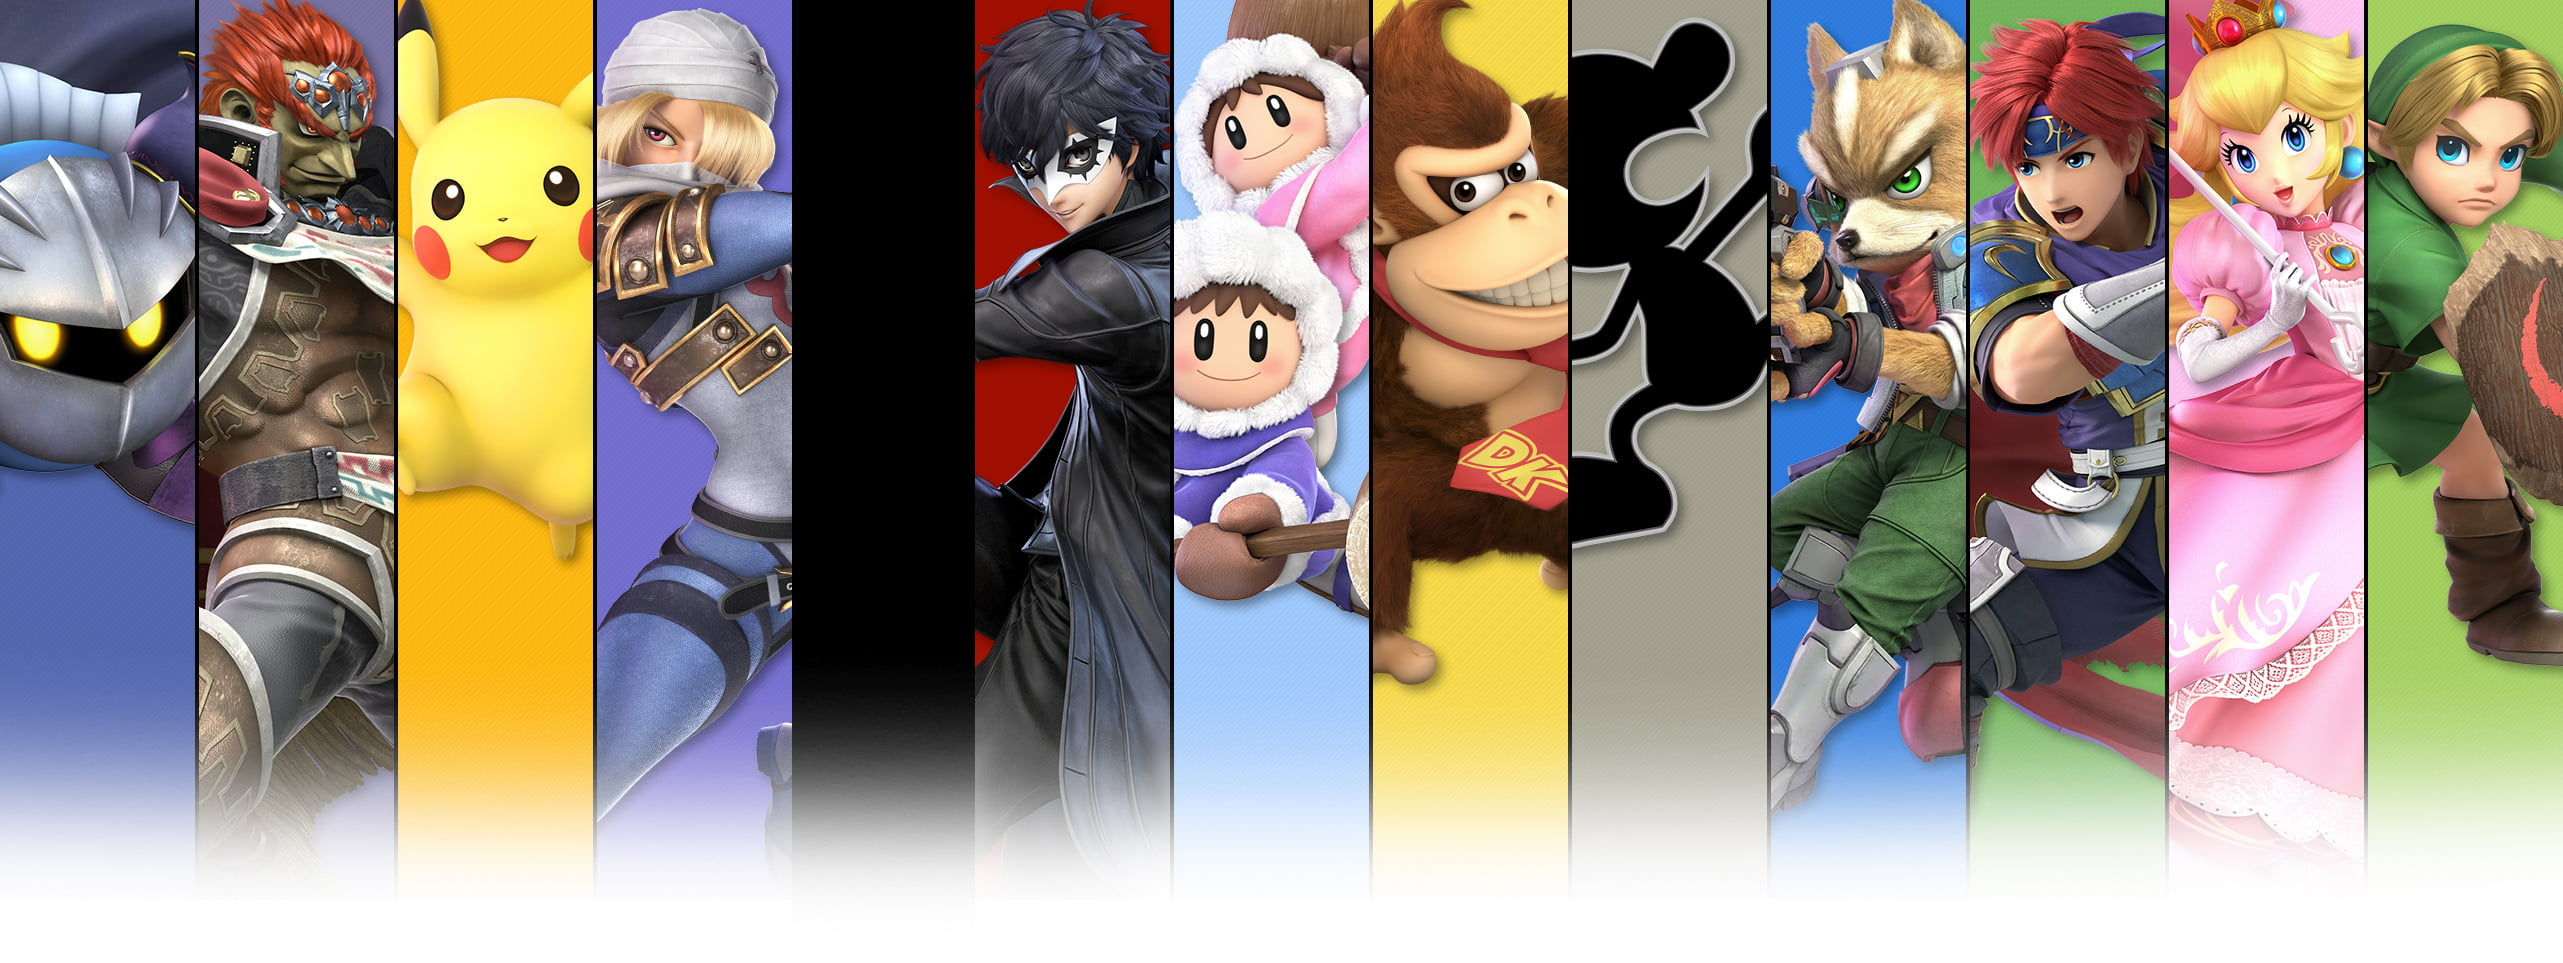 Fighters | Super Smash Bros  Ultimate – Official Site